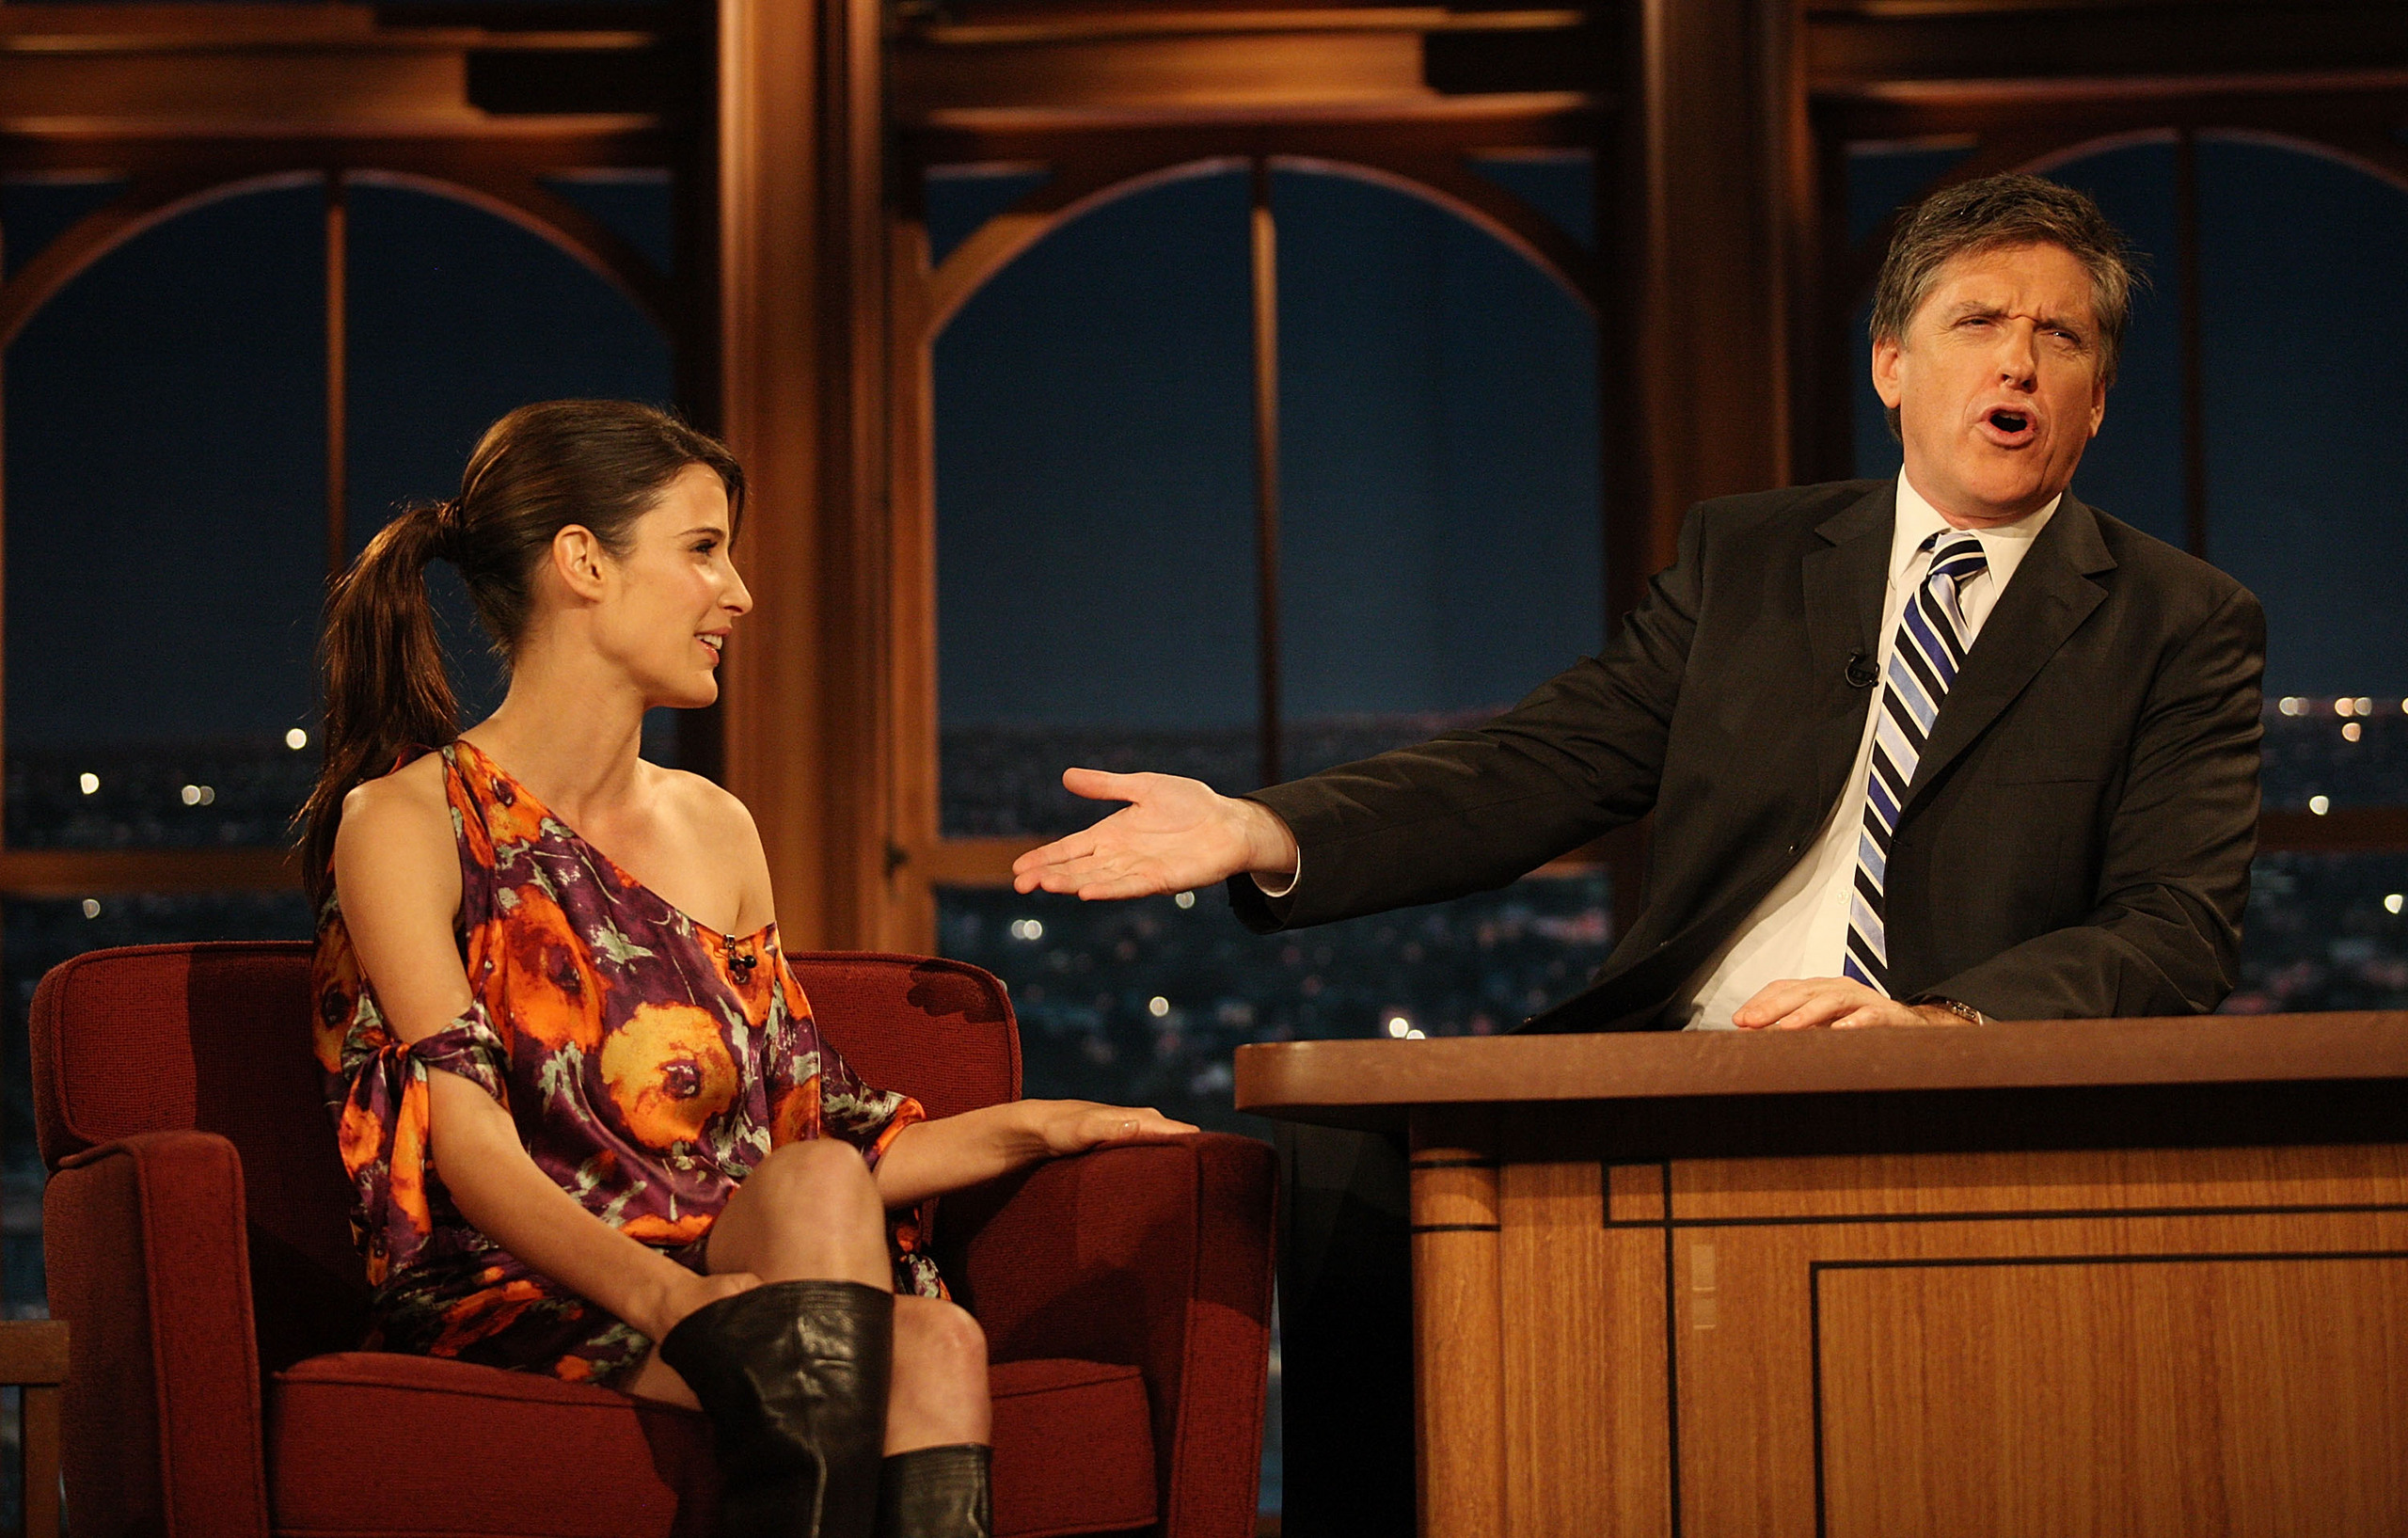 Cobie Smulders late late show